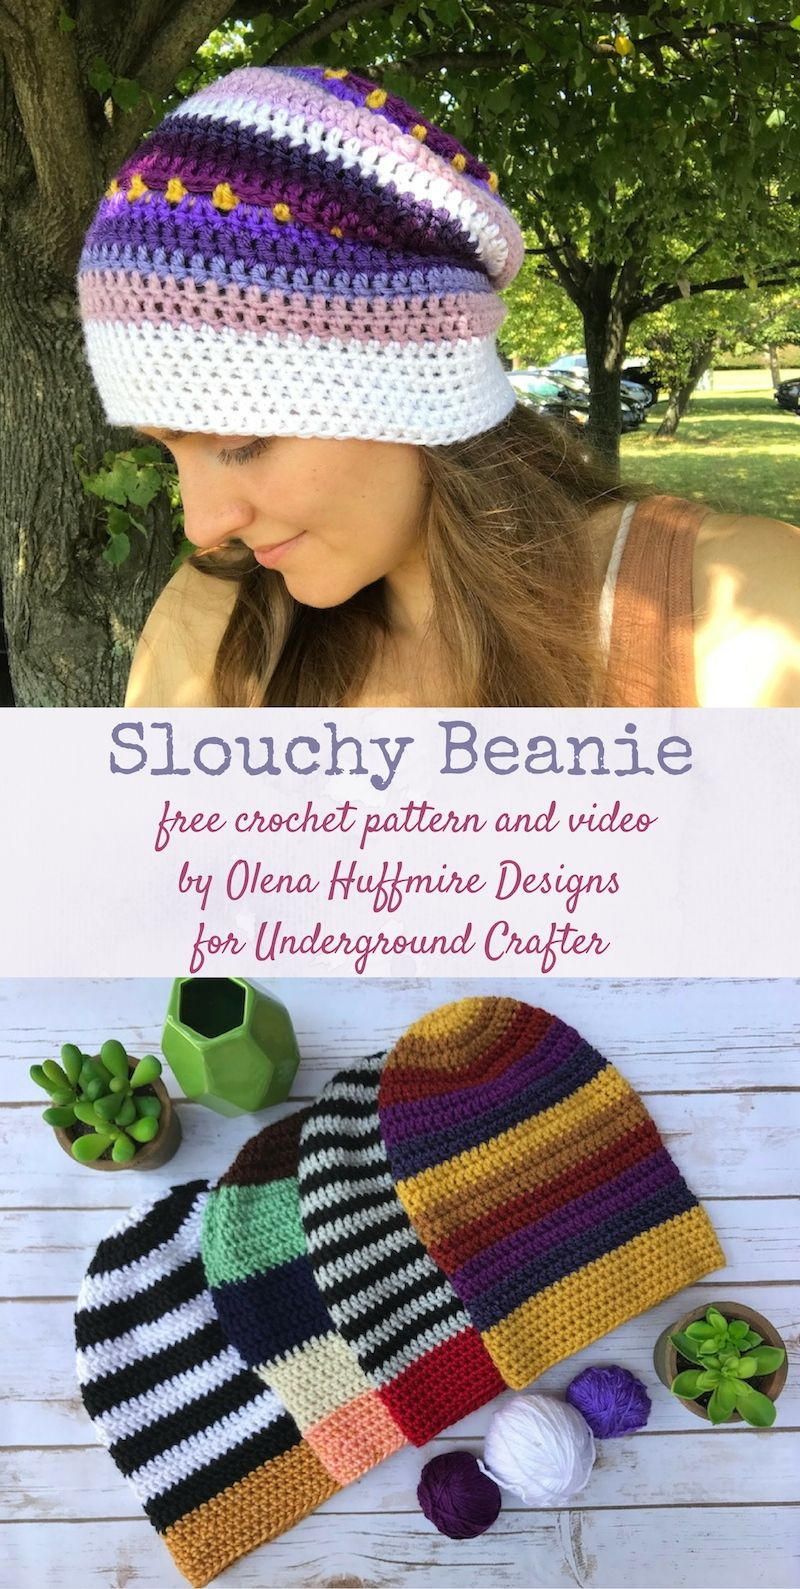 Free crochet pattern: Slouchy Beanie with video by Olena Huffmire ...